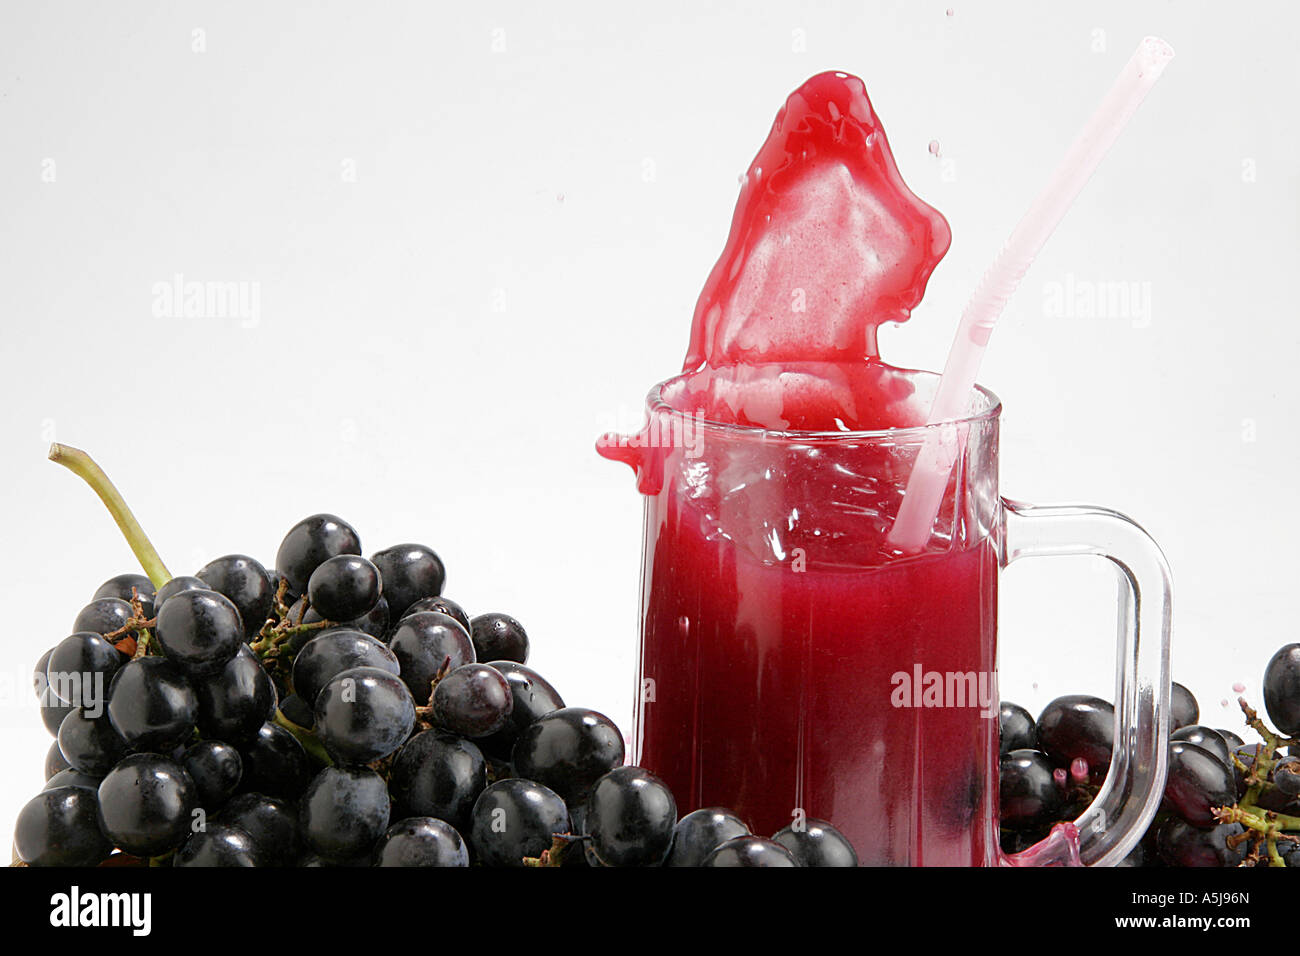 fruit black grapes glass juice splash white background